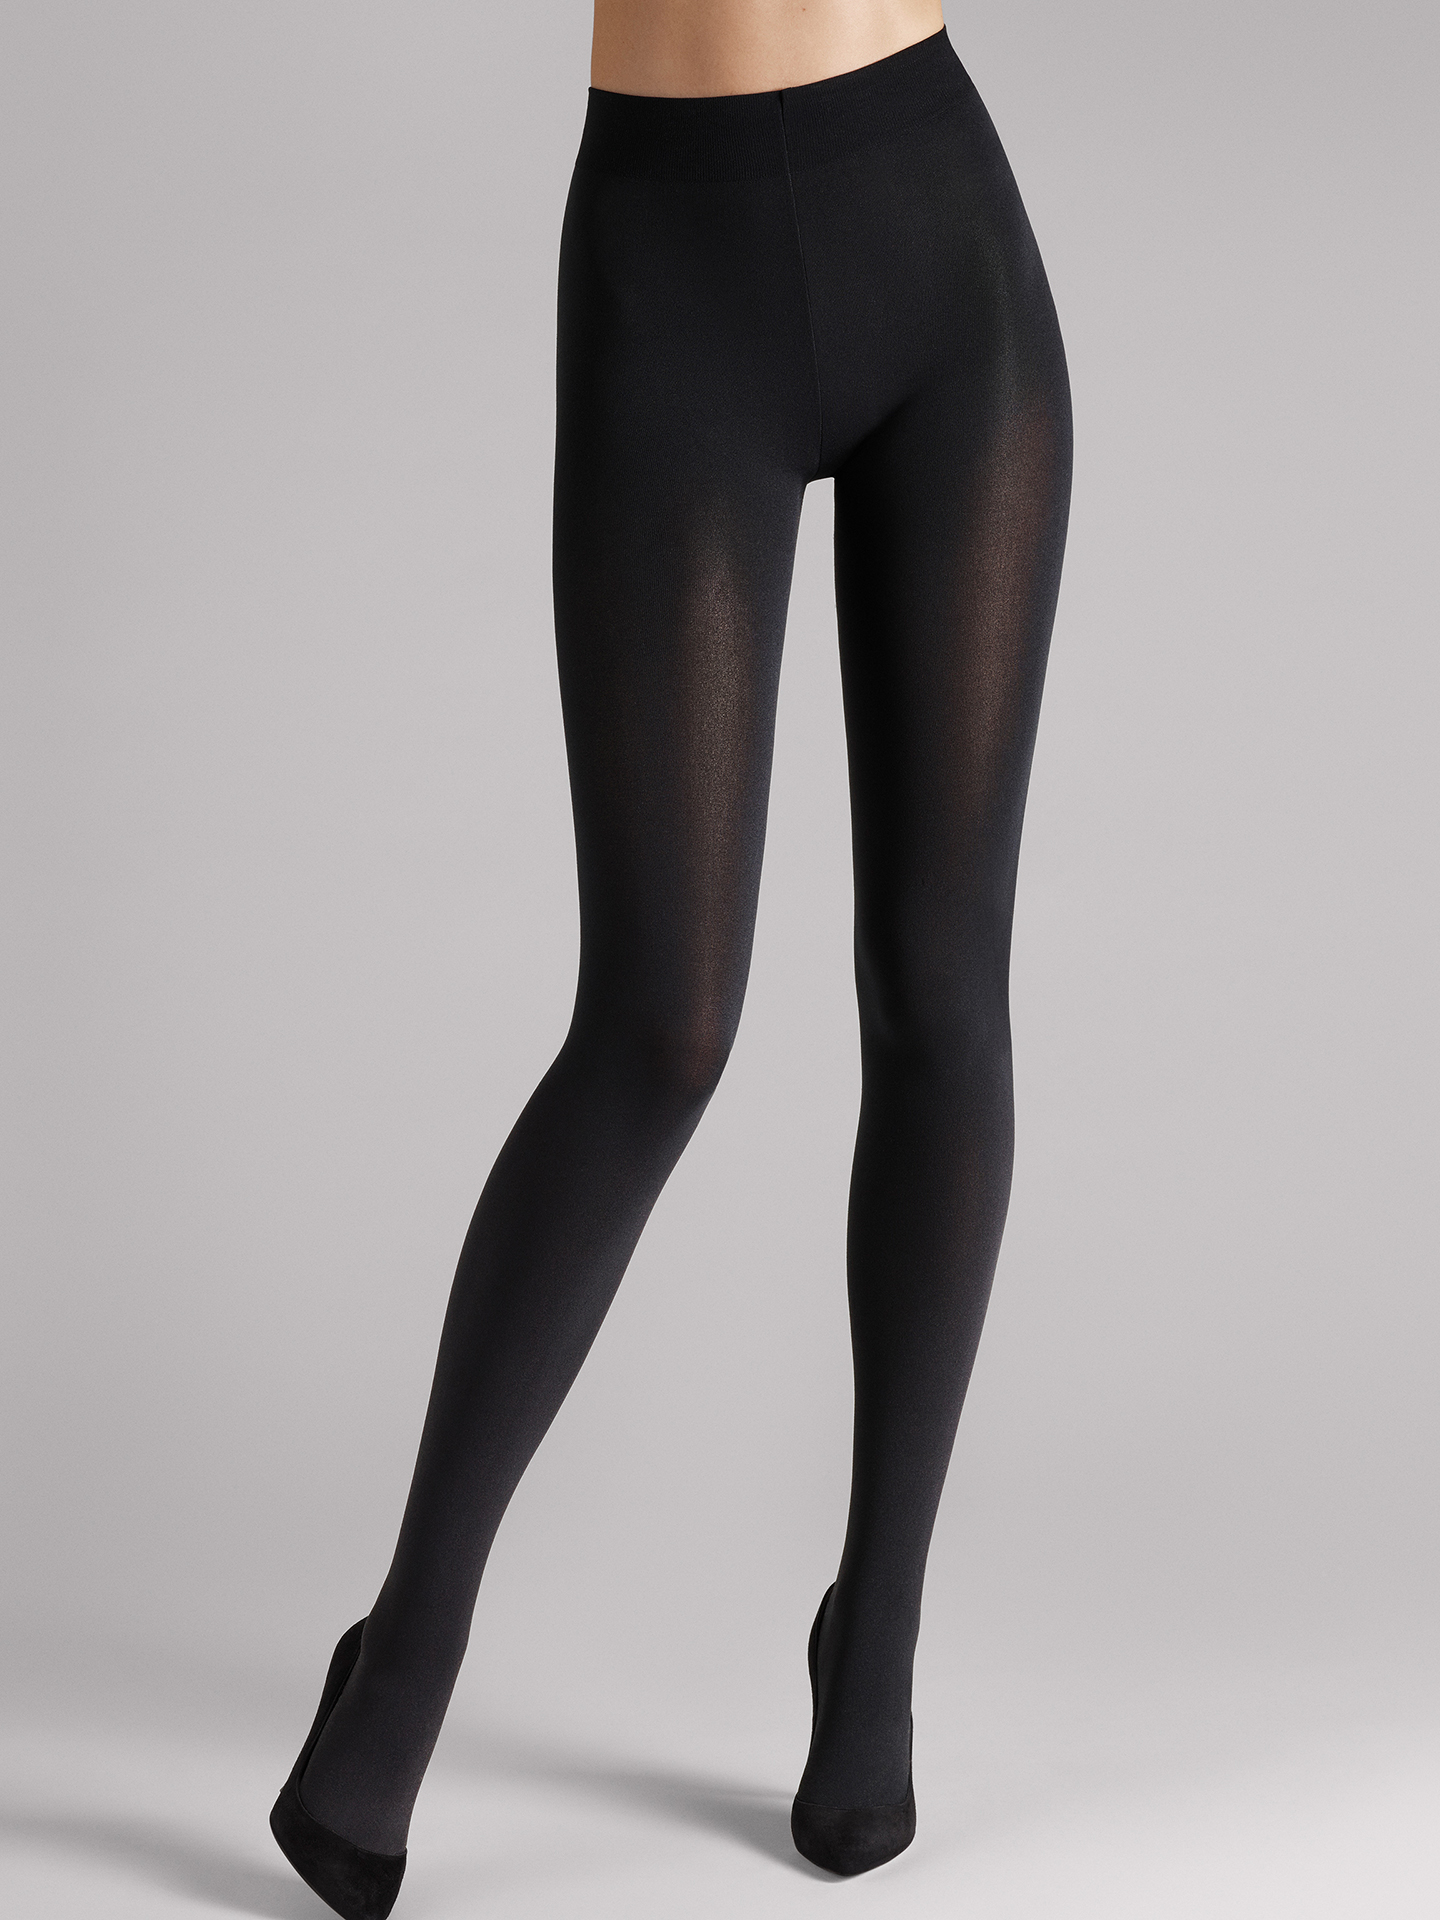 Wolford Apparel & Accessories > Clothing > Collant Velvet Sensation Tights - 7005 - L